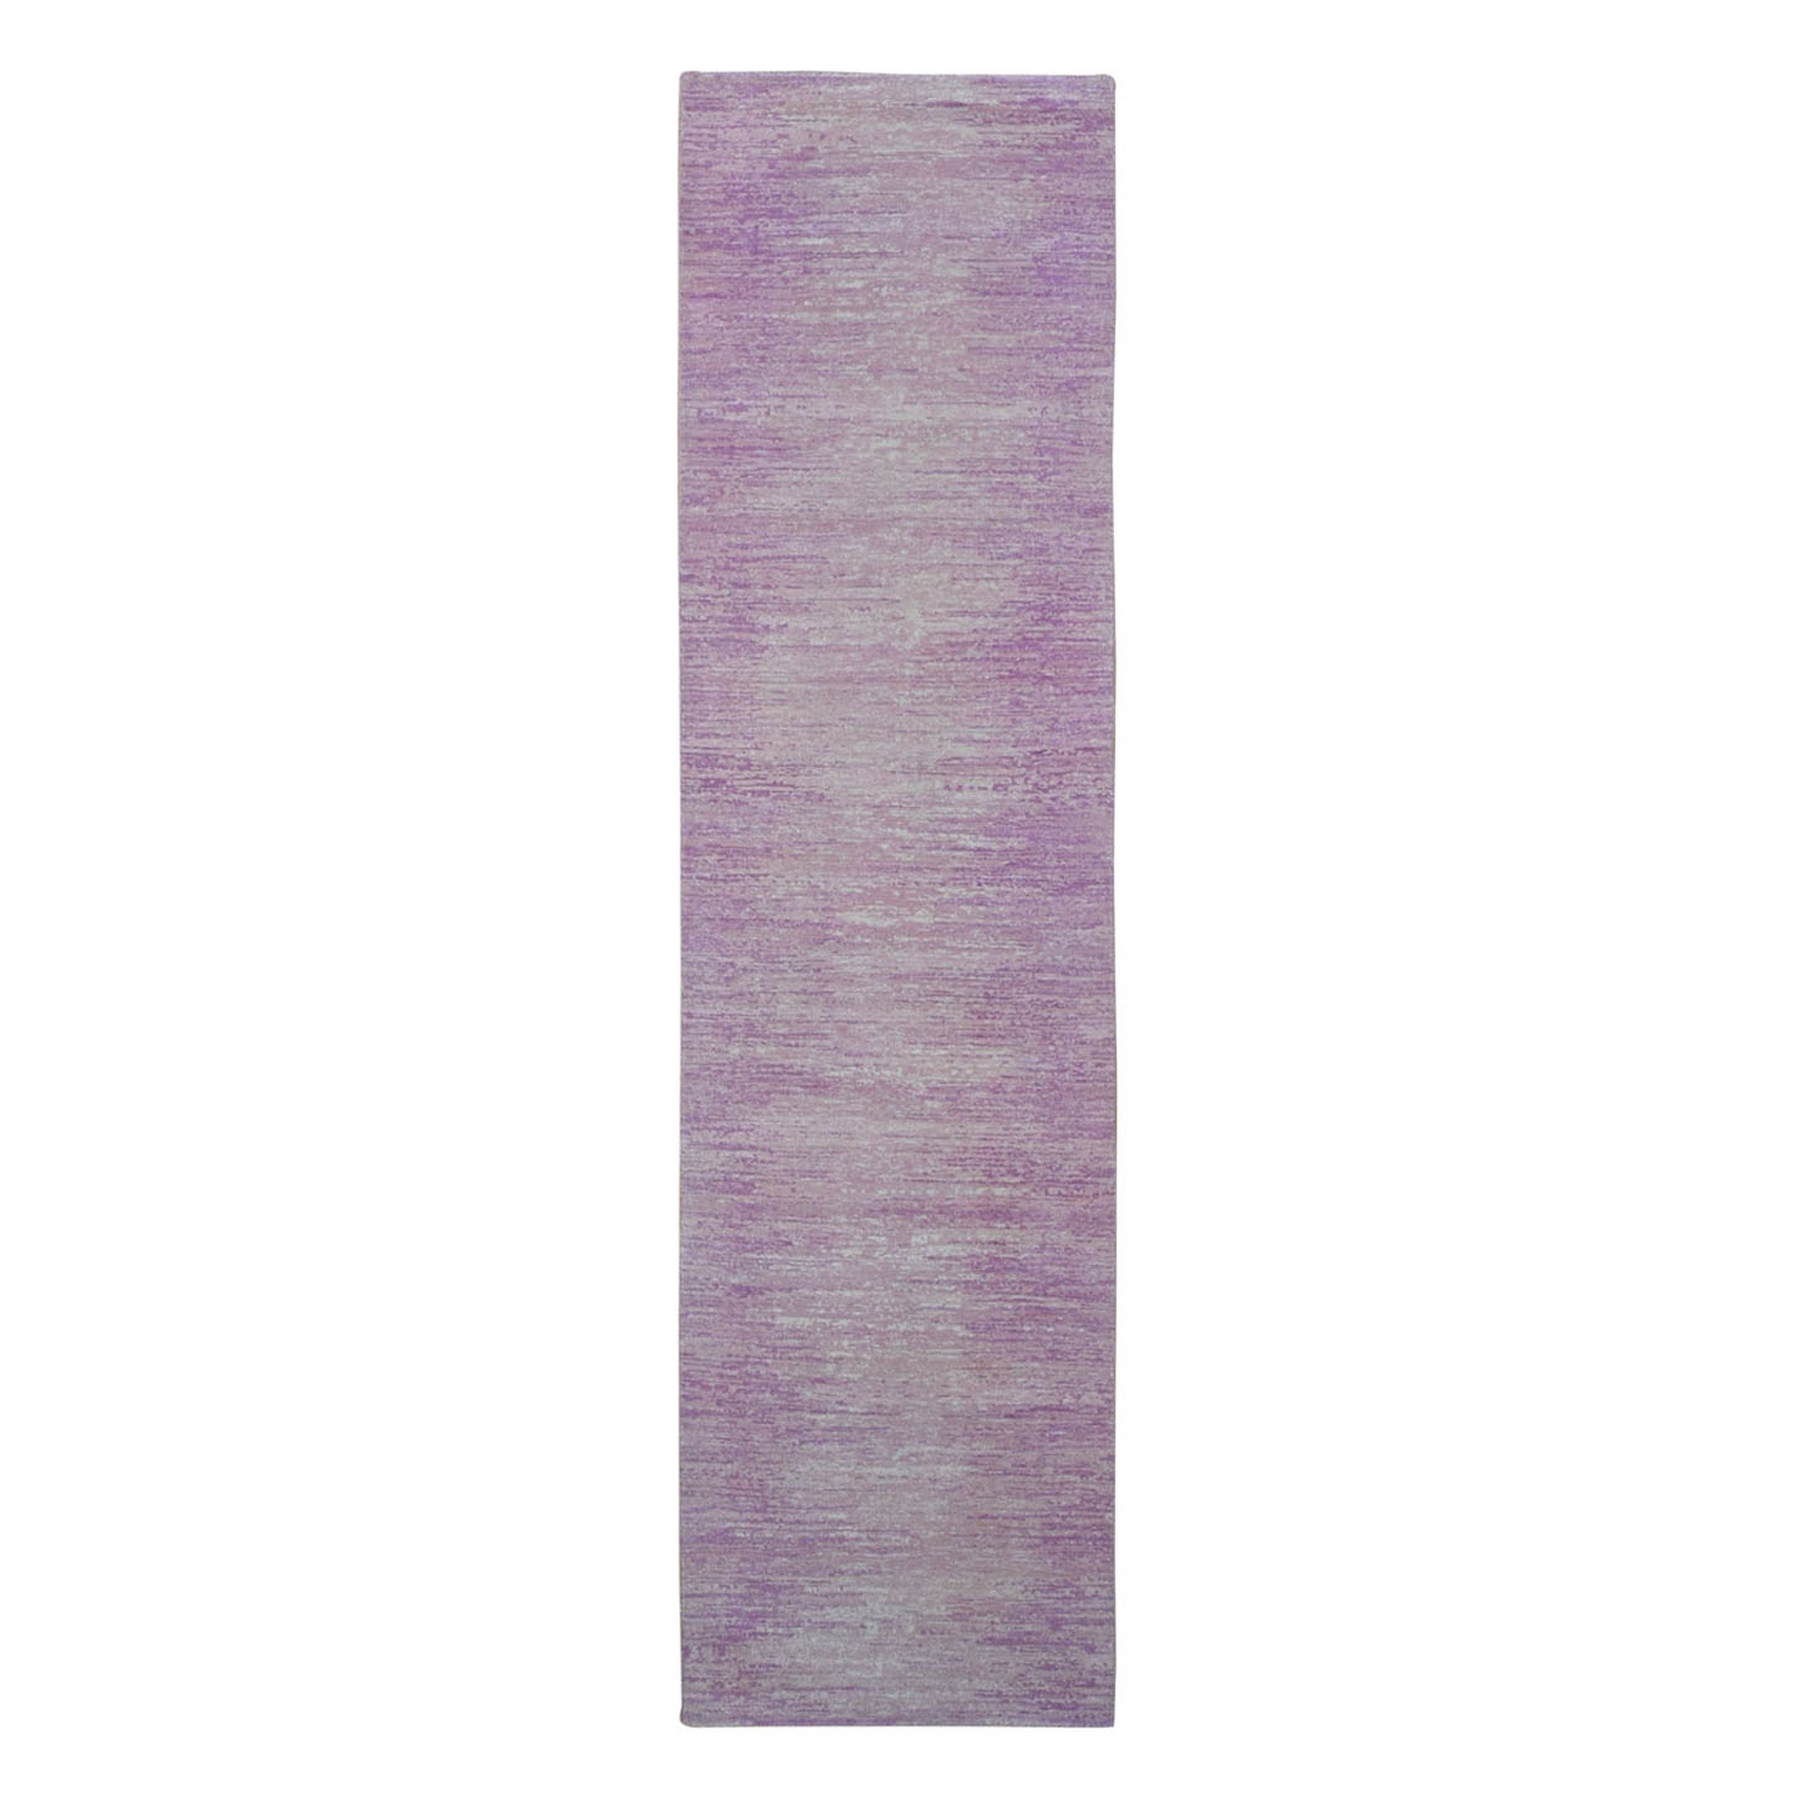 Mid Century Modern Collection Hand Knotted Pink Rug No: 1133516